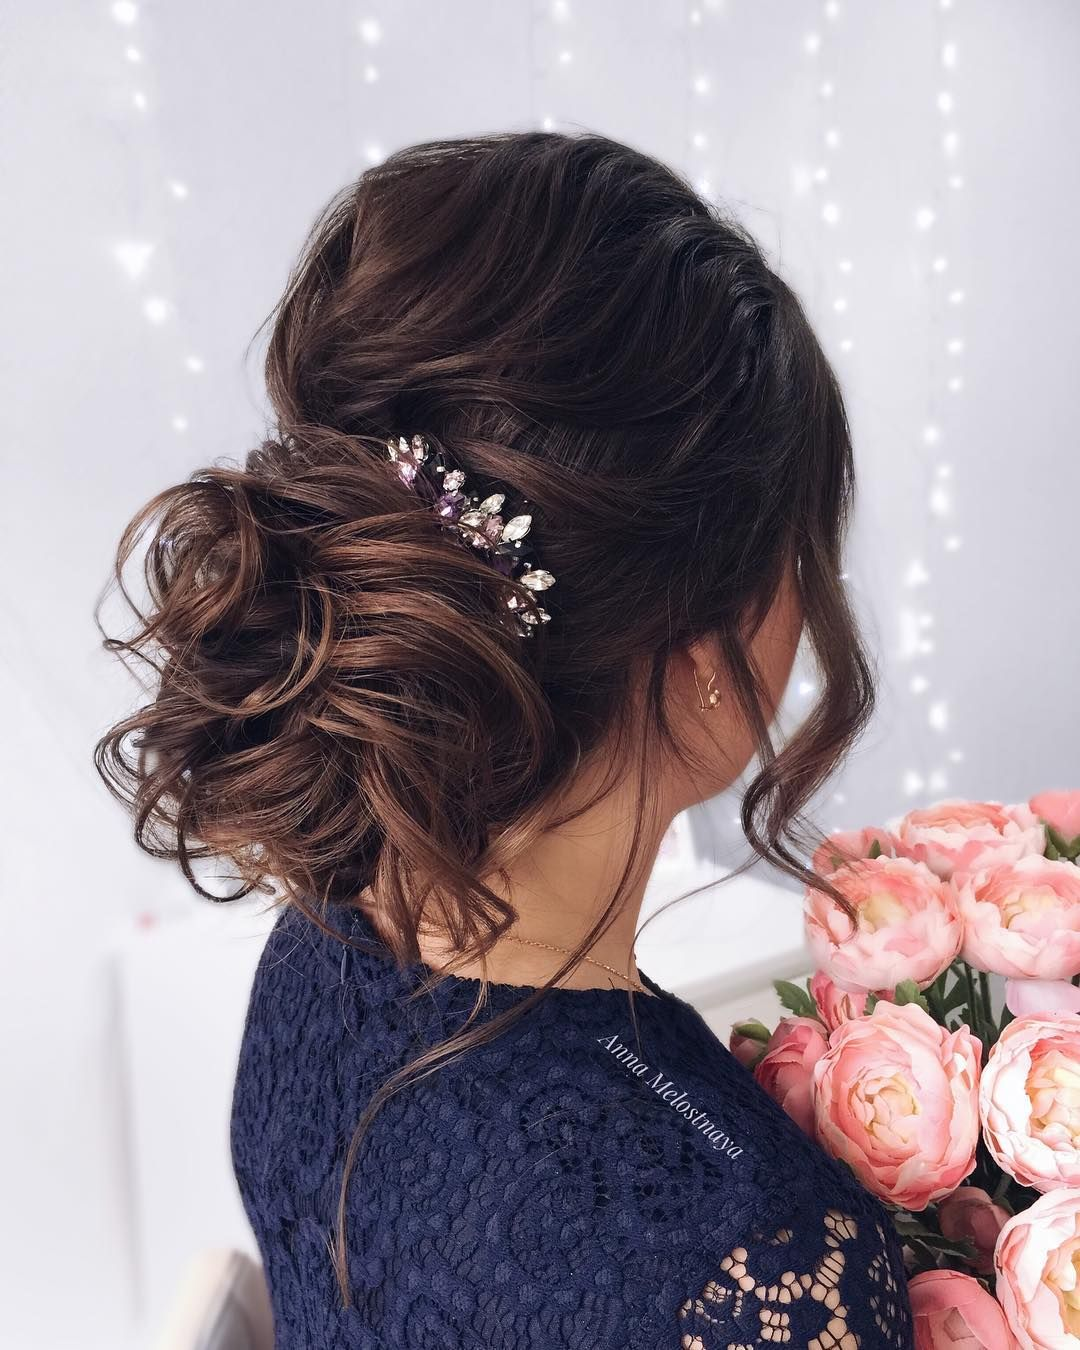 dropdead gorgeous wedding hairstyles for every bride to be